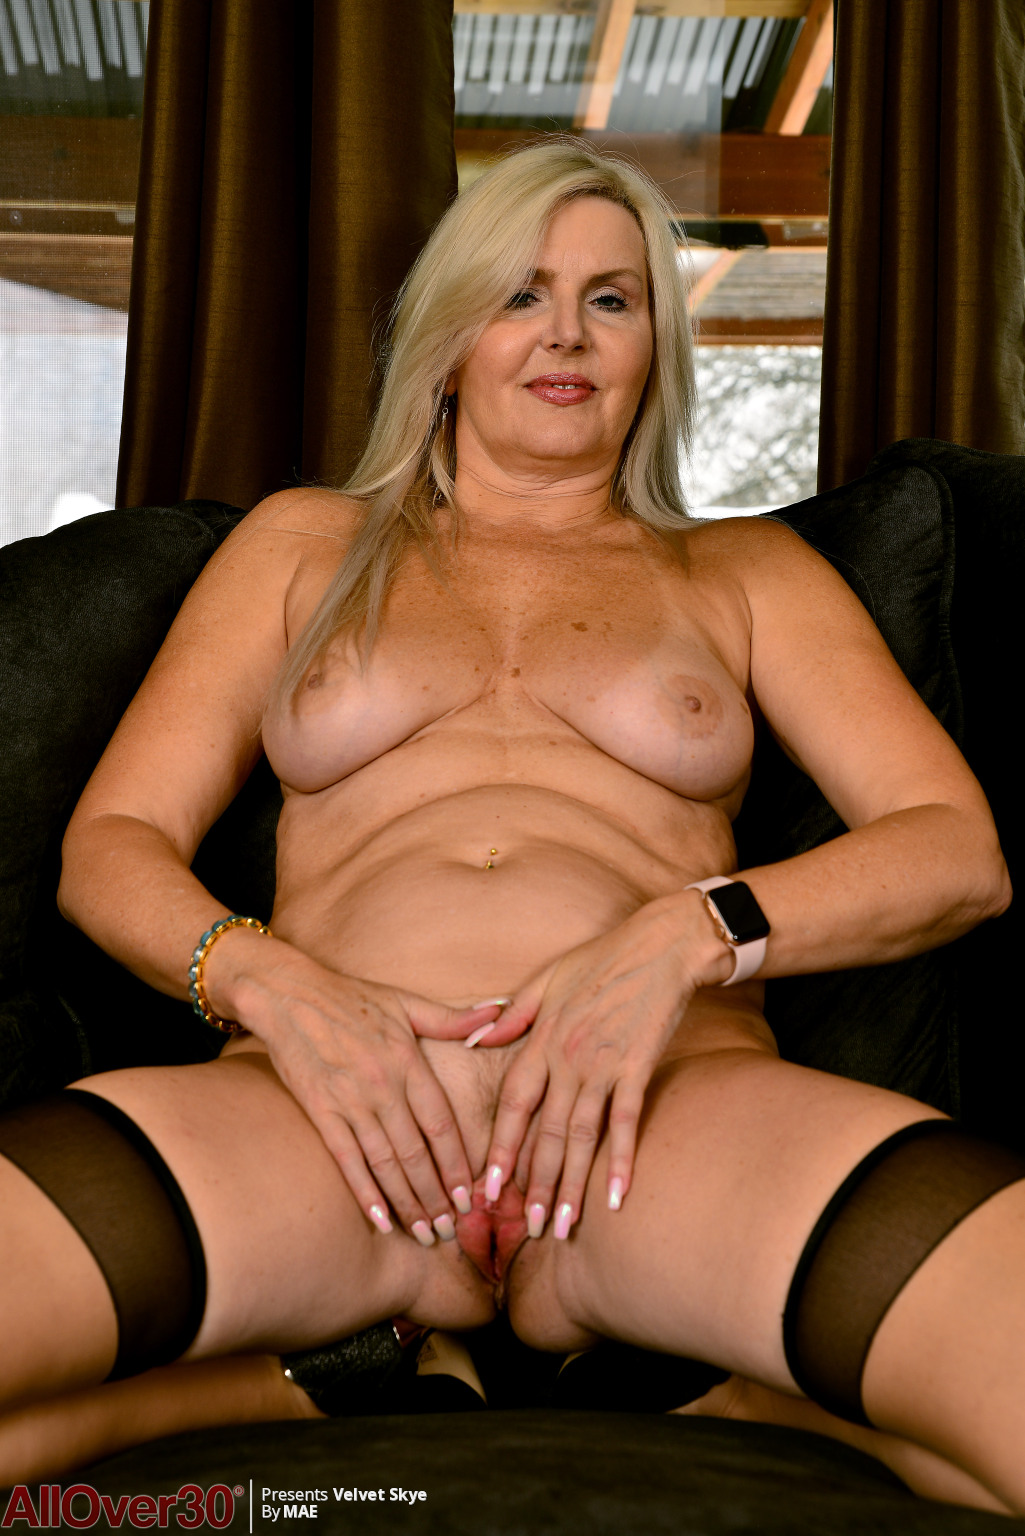 velvet-skye-angelic-mature-beauty-14